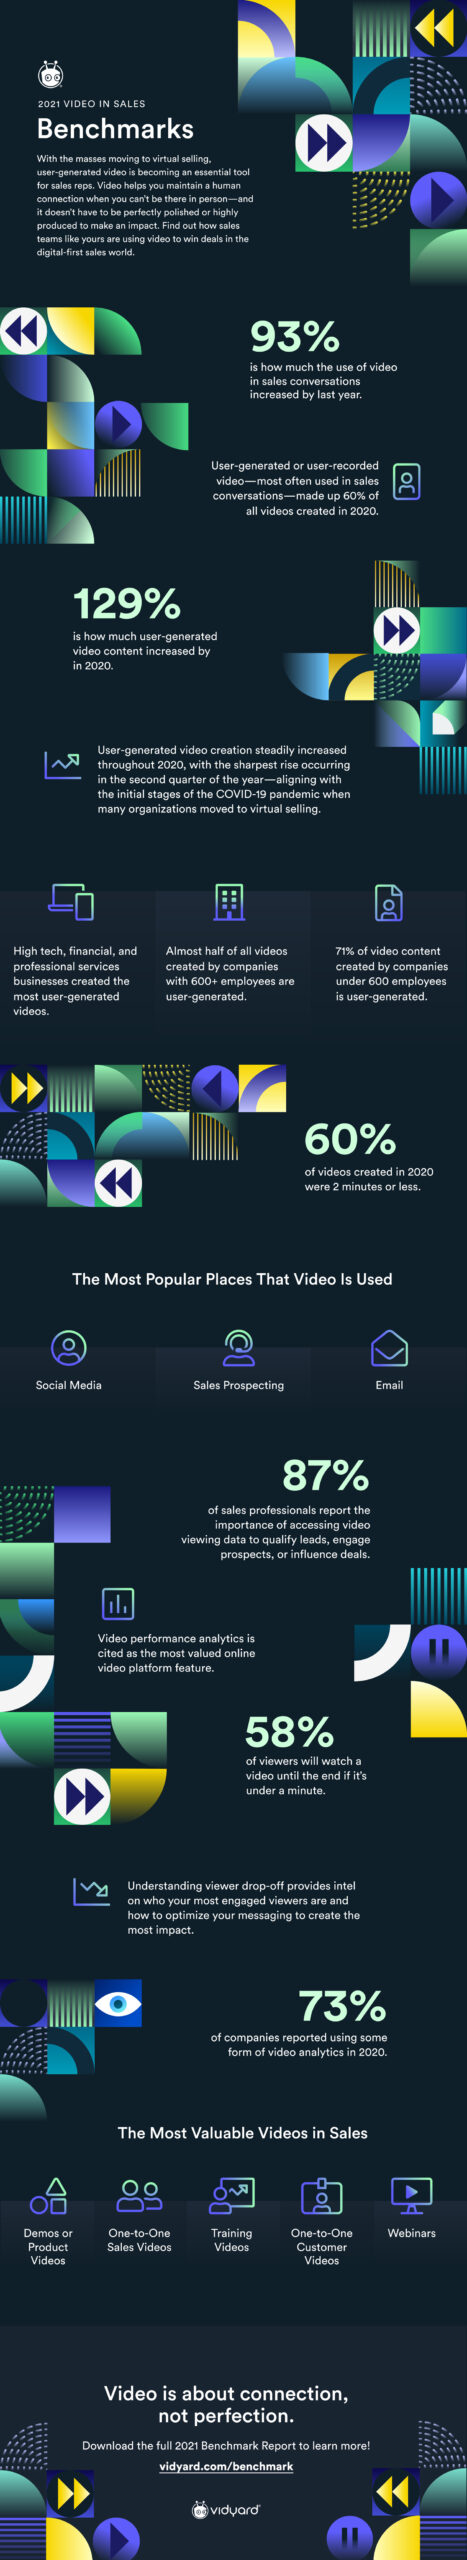 The 2021 Video in Sales Benchmark Infographic